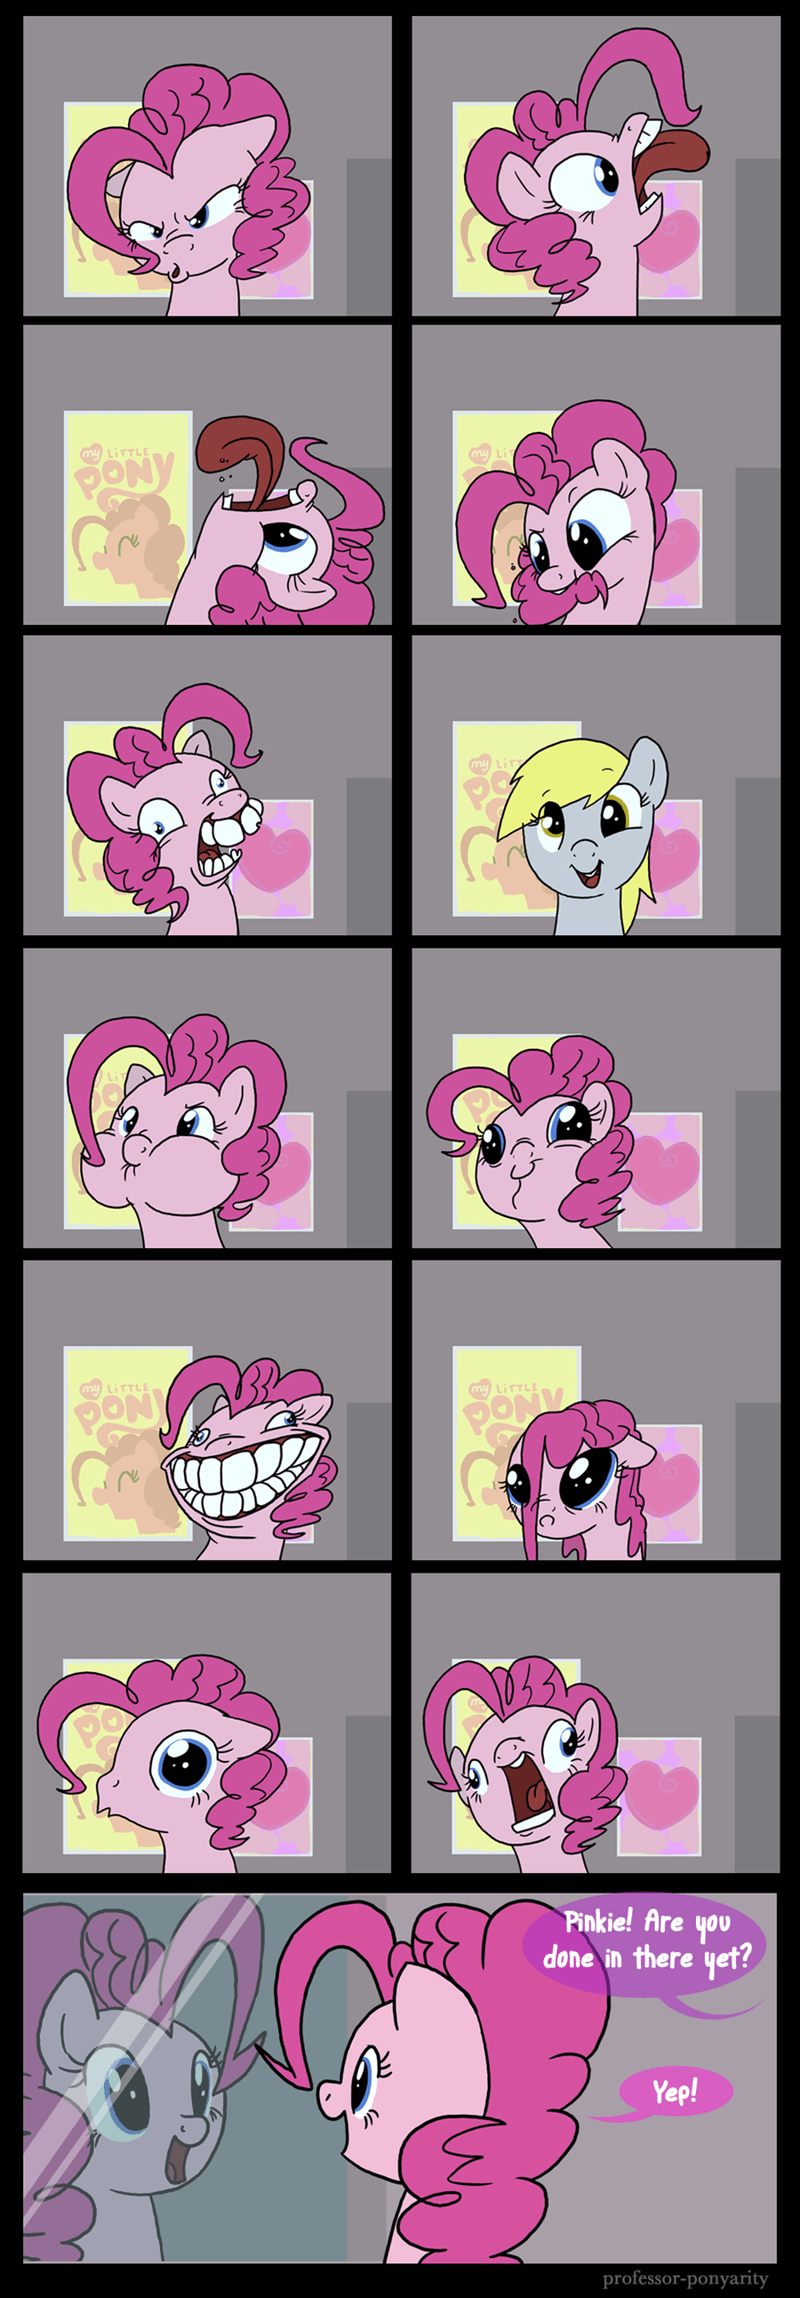 face,derpy hooves,pinkie pie,comic